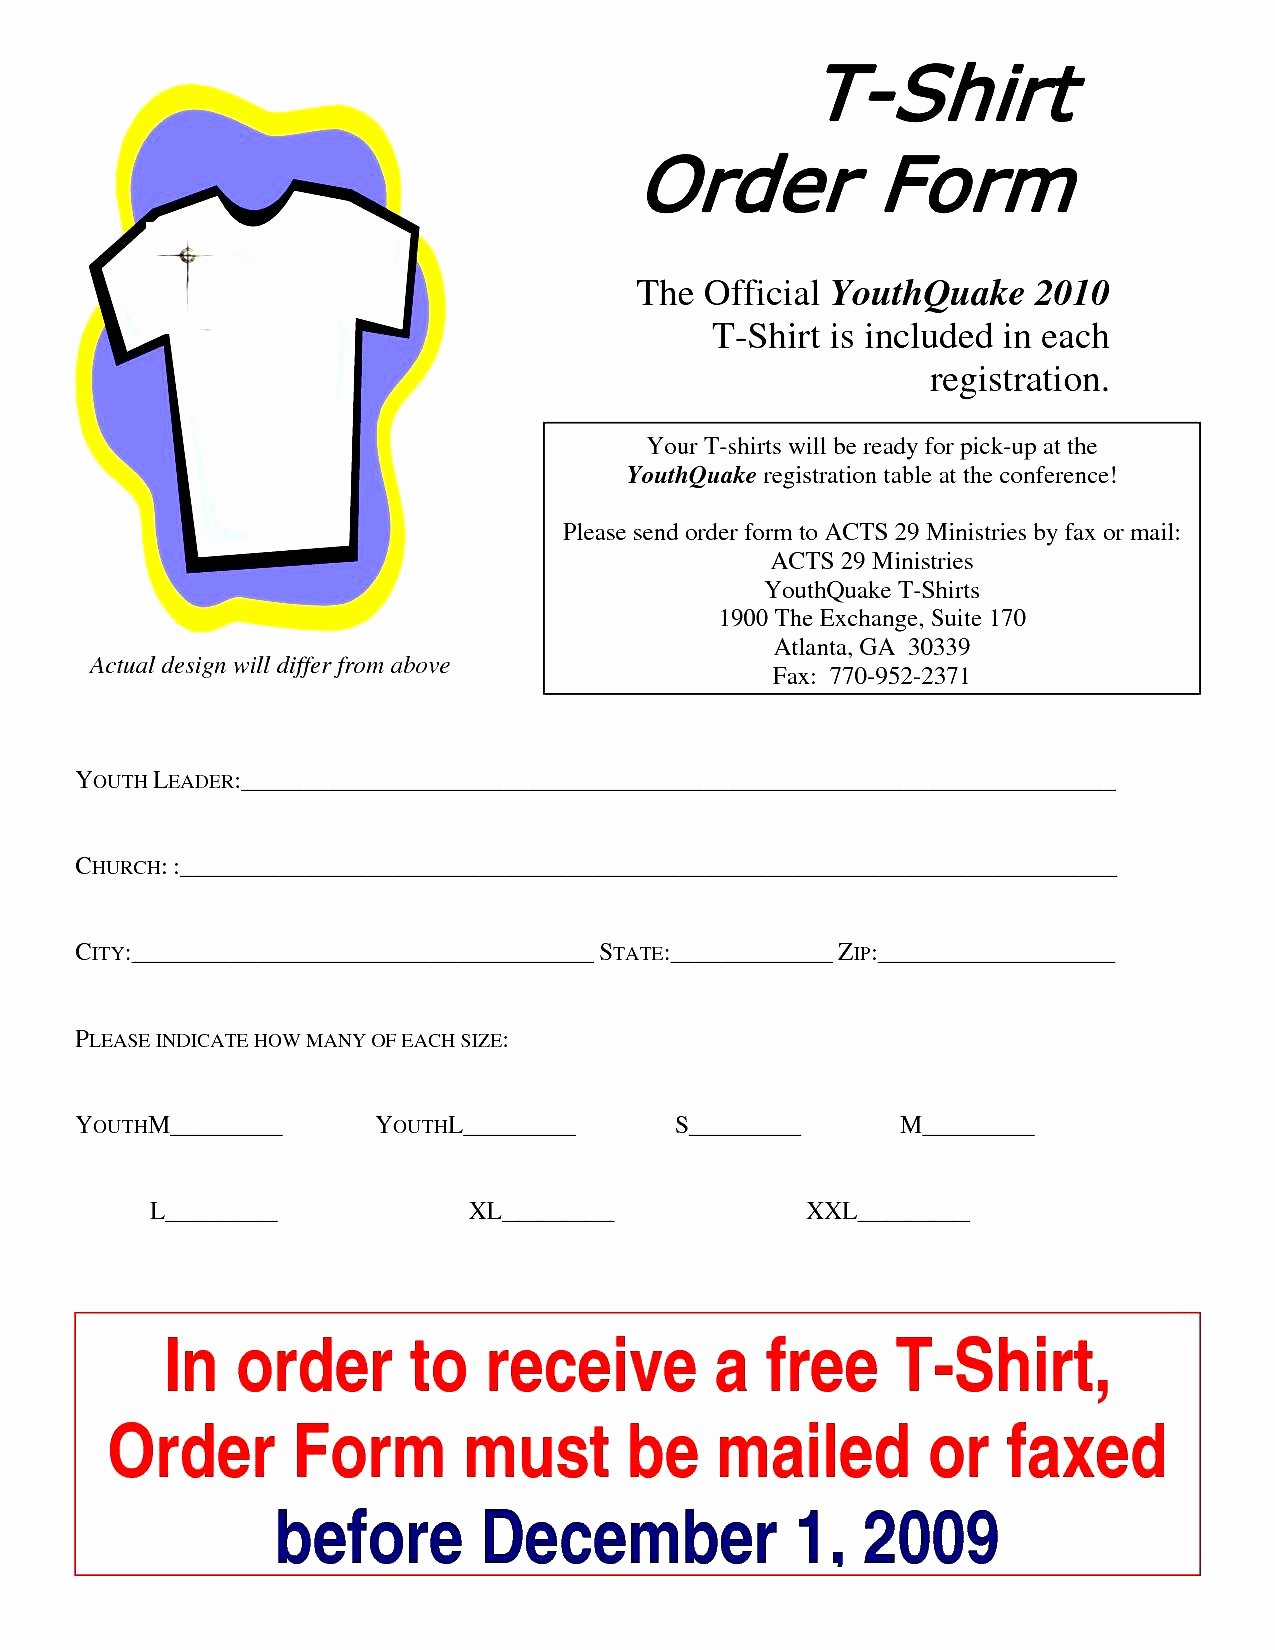 Shirt order form Template Lovely T Shirt order form Template